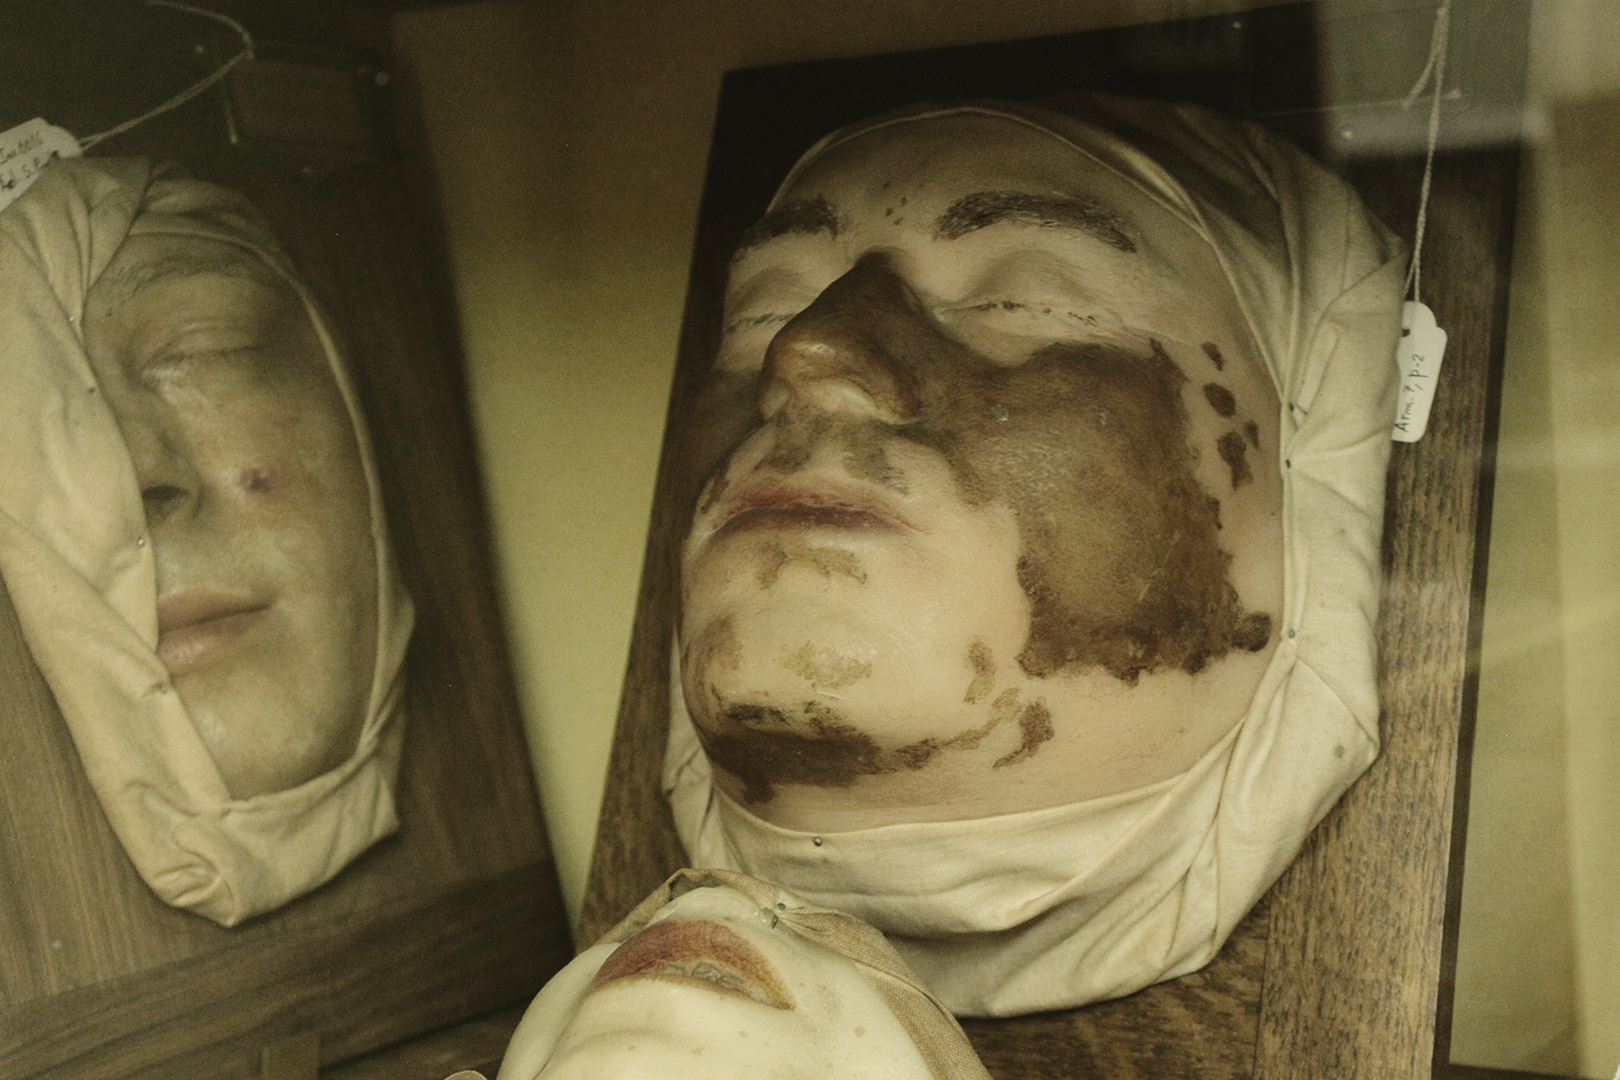 Wax model of indeterminate facial skin lesion, Museum of Portuguese Dermatology (Museu da Dermatologia Portuguesa).